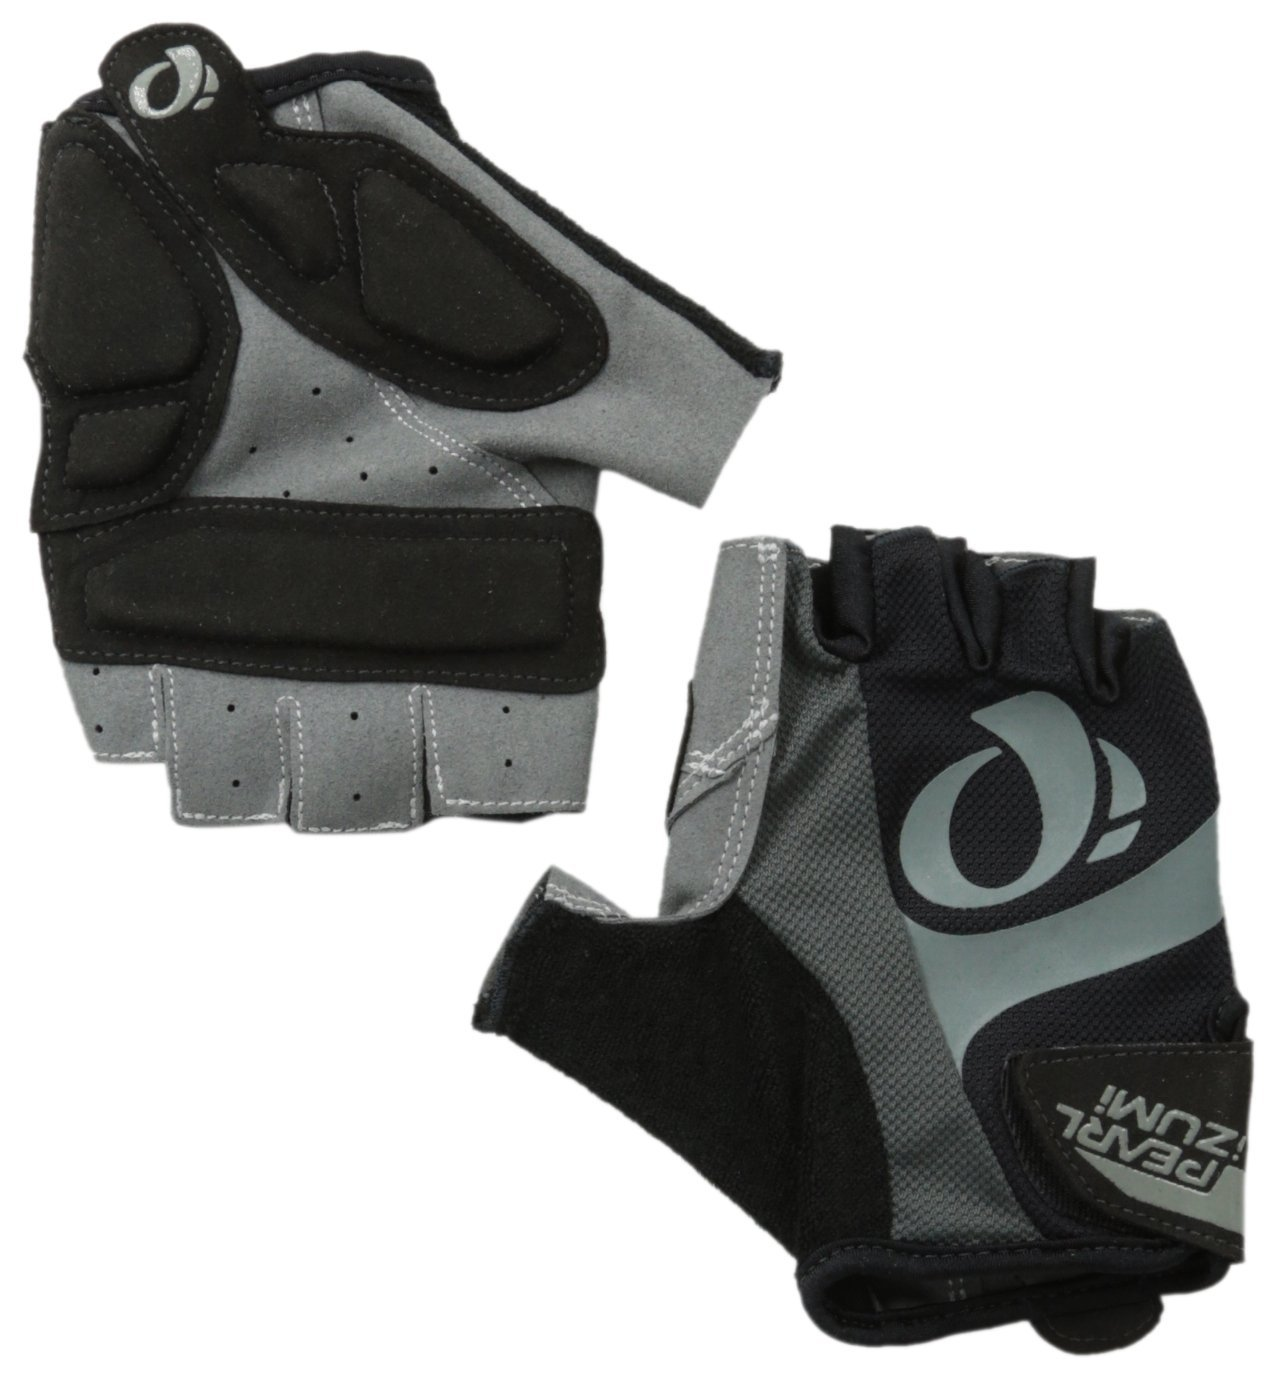 Motorcycle gloves to prevent numbness - Best Cycling Gloves For Numbness 2016